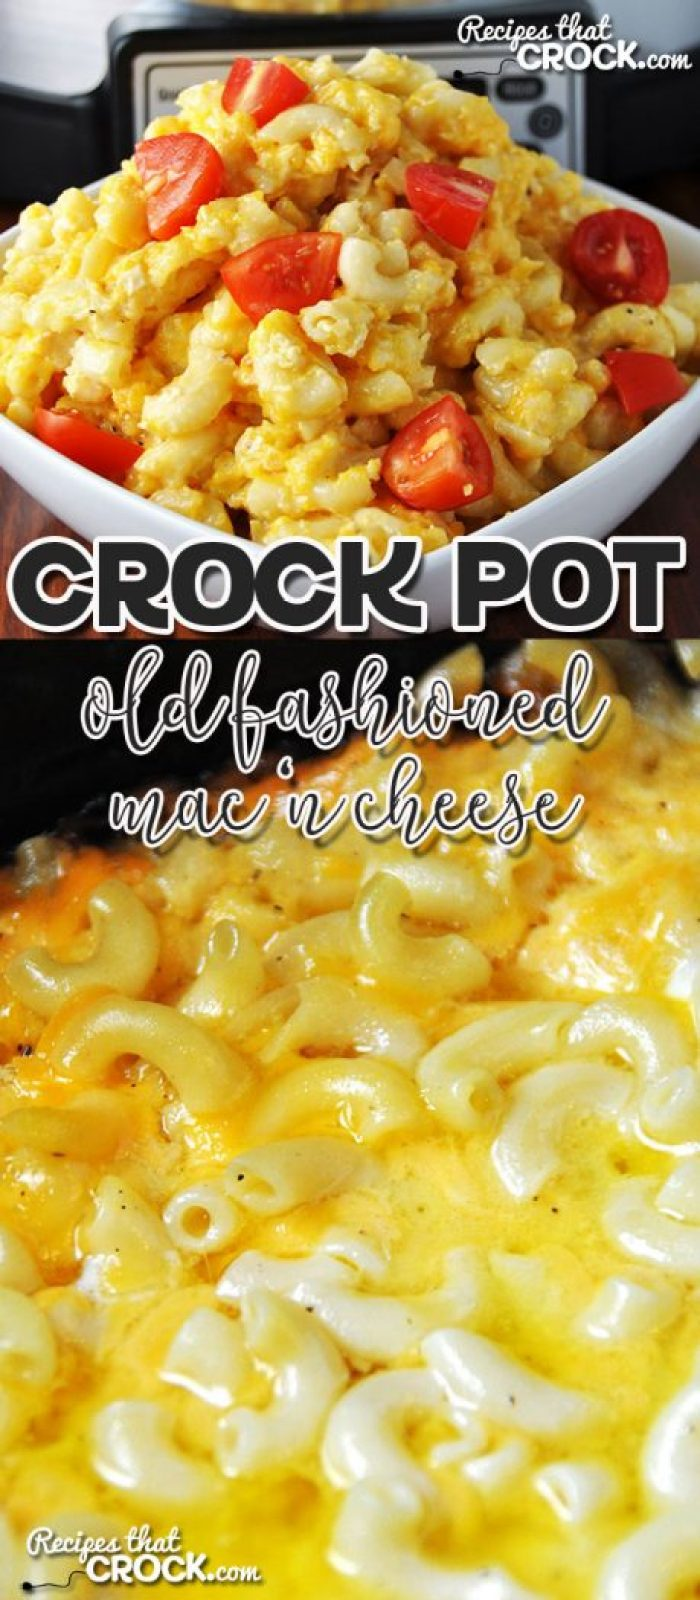 This Old Fashioned Crock Pot Mac 'n Cheese is incredibly easy to make and will have you reminiscing about the yummy mac 'n cheese your grandma used to make.